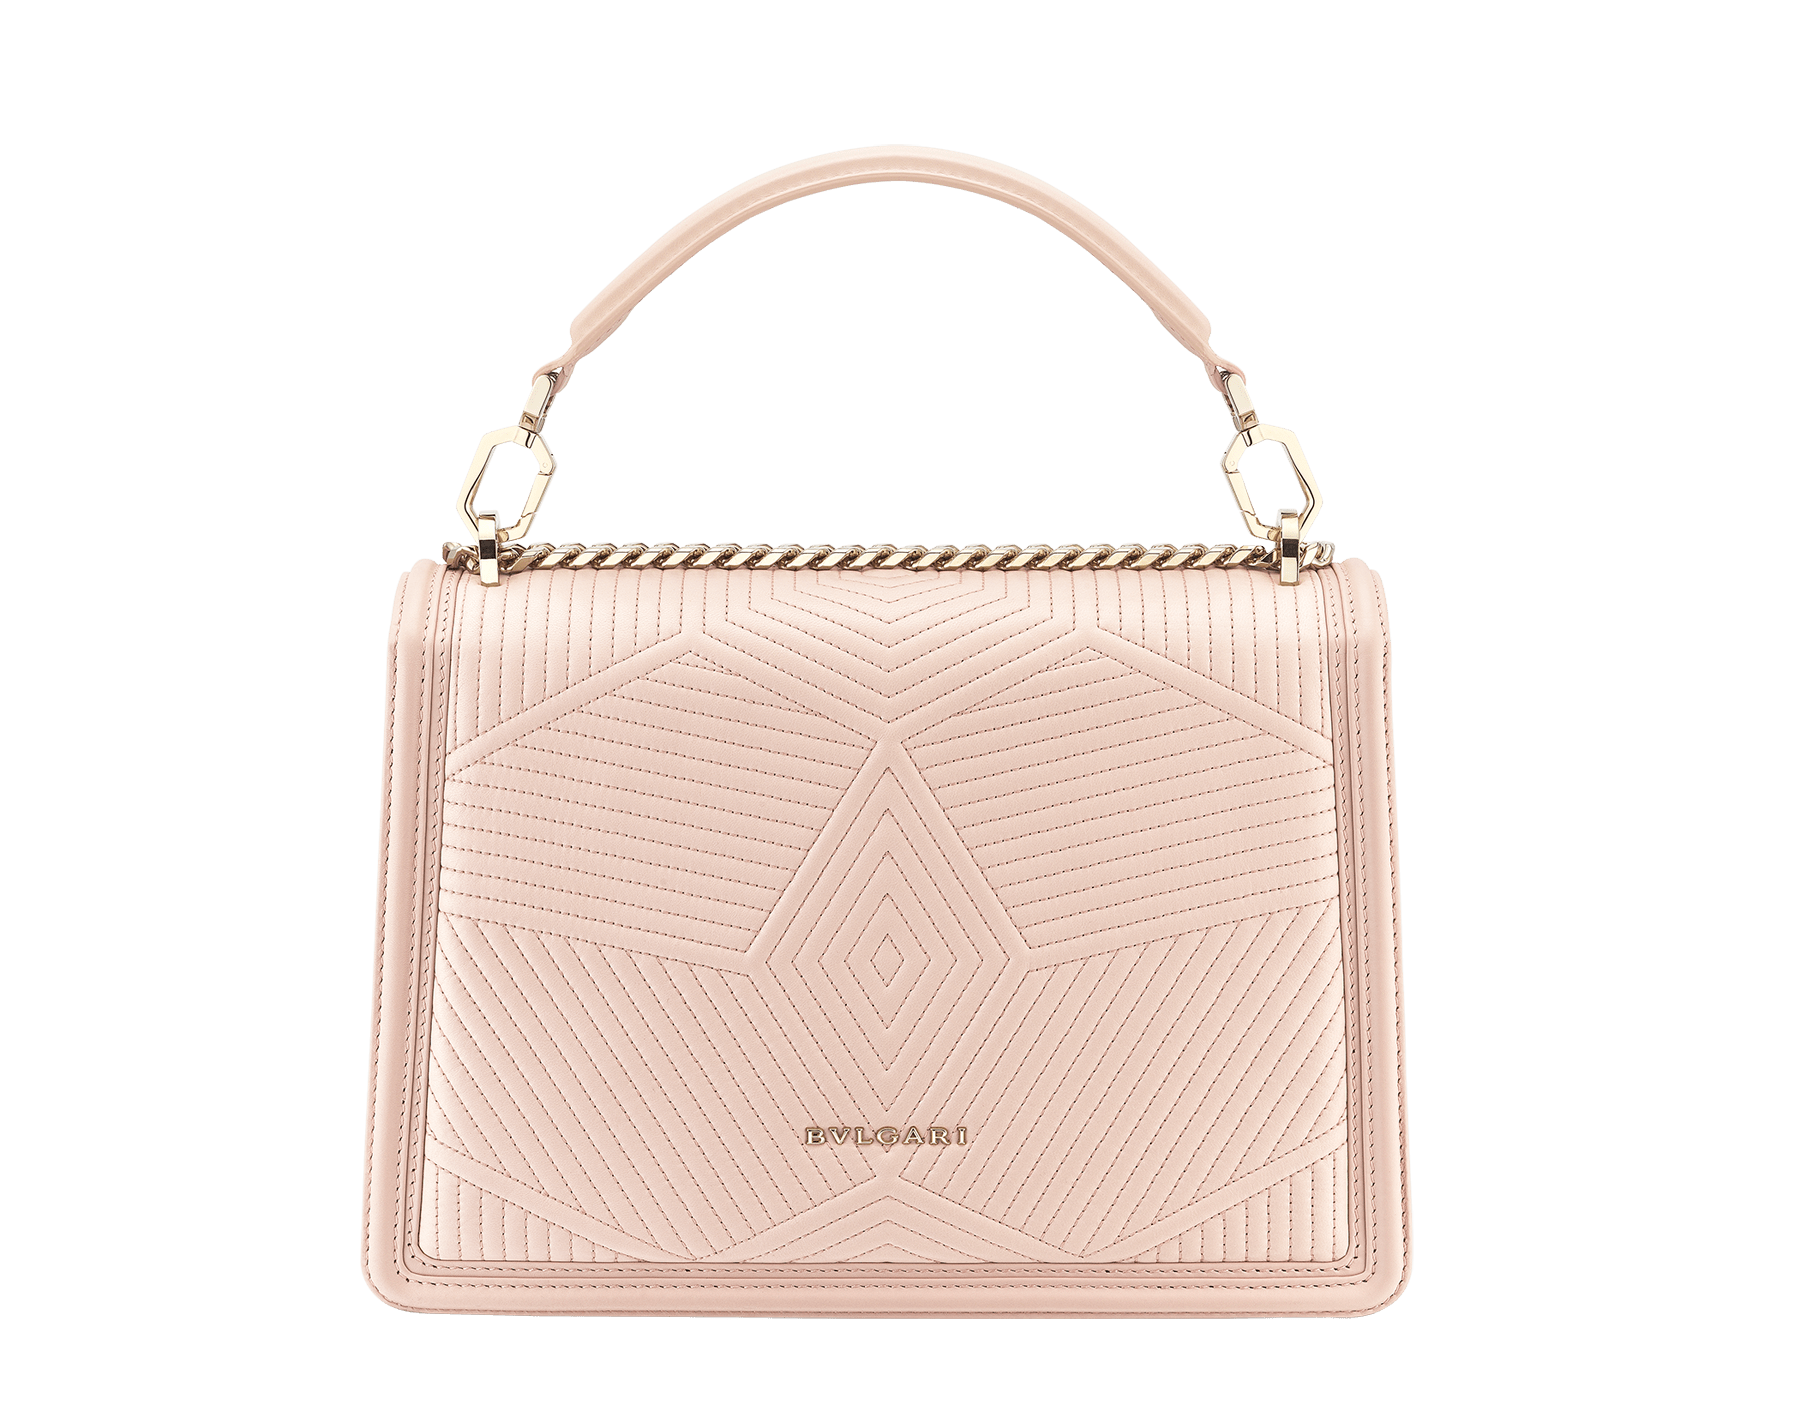 """Serpenti Diamond Blast"" shoulder bag in crystal rose quilted nappa leather body and crystal rose calf leather frames. Iconic snakehead closure in light gold plated brass enriched with black and crystal rose enamel and black onyx eyes 287387 image 3"